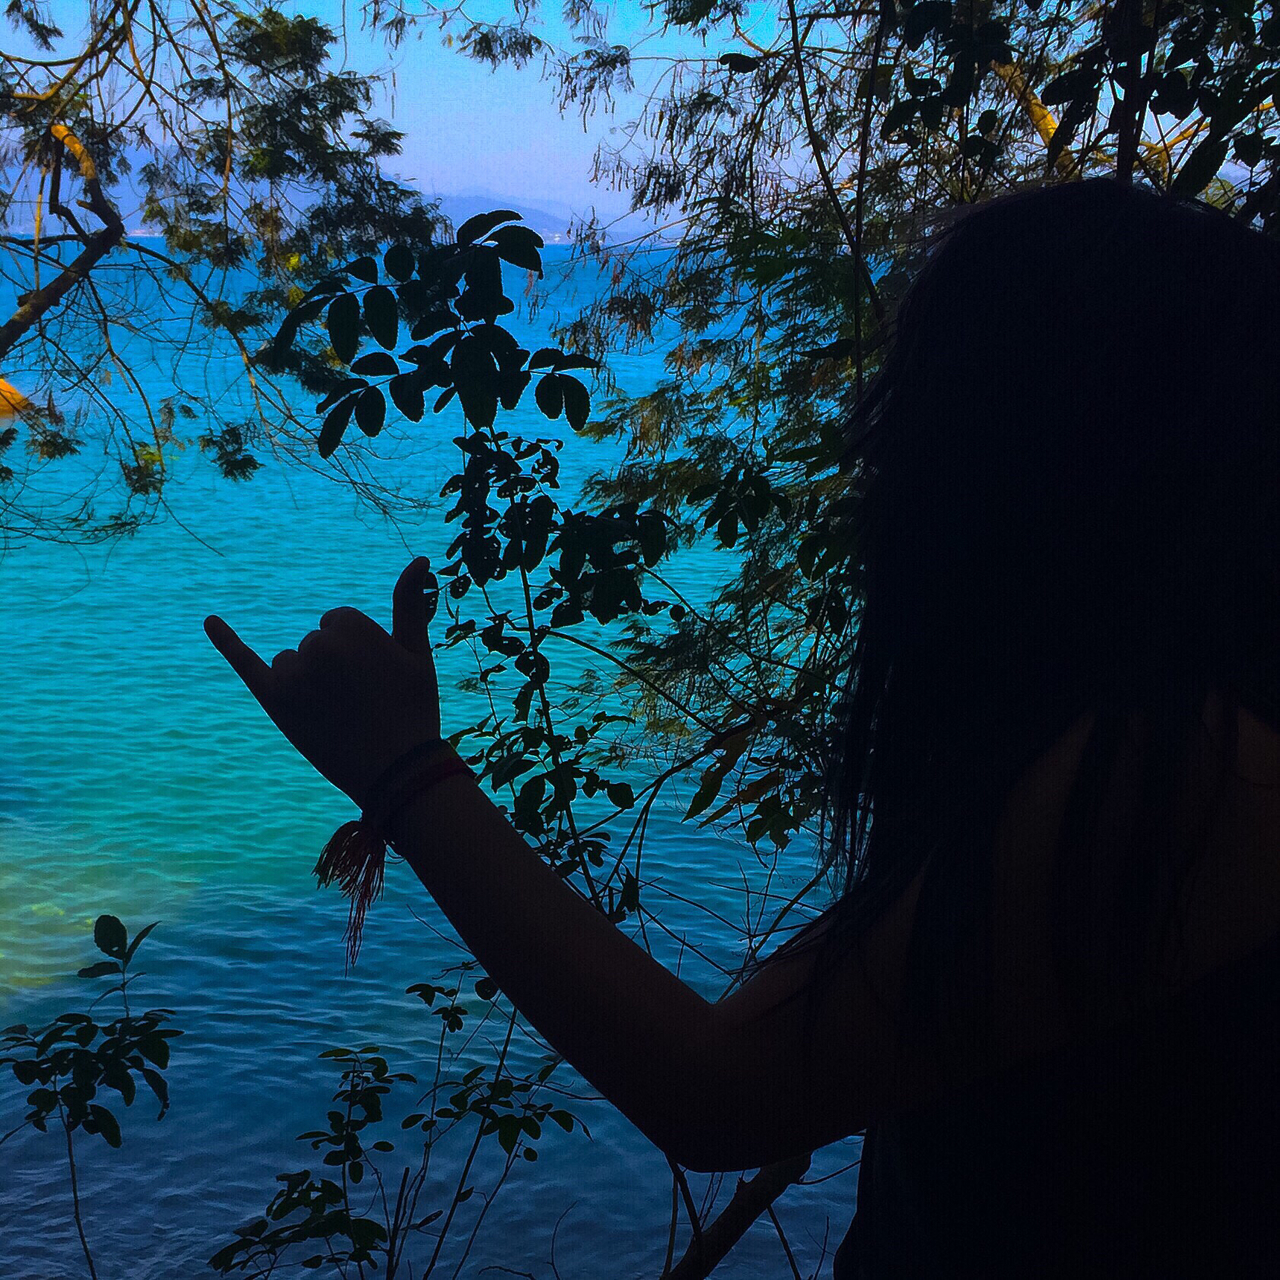 adventure, beach, cat, colors, cores, criative, day, explore, eyes, flower, fotografia, freedom, friends, funny, girl, goodvibes, hippie, love, nature, night, nikon, ocean, oceano, olhos, paradise, paraiso, praia, riodejaneiro, sea, summer, talento